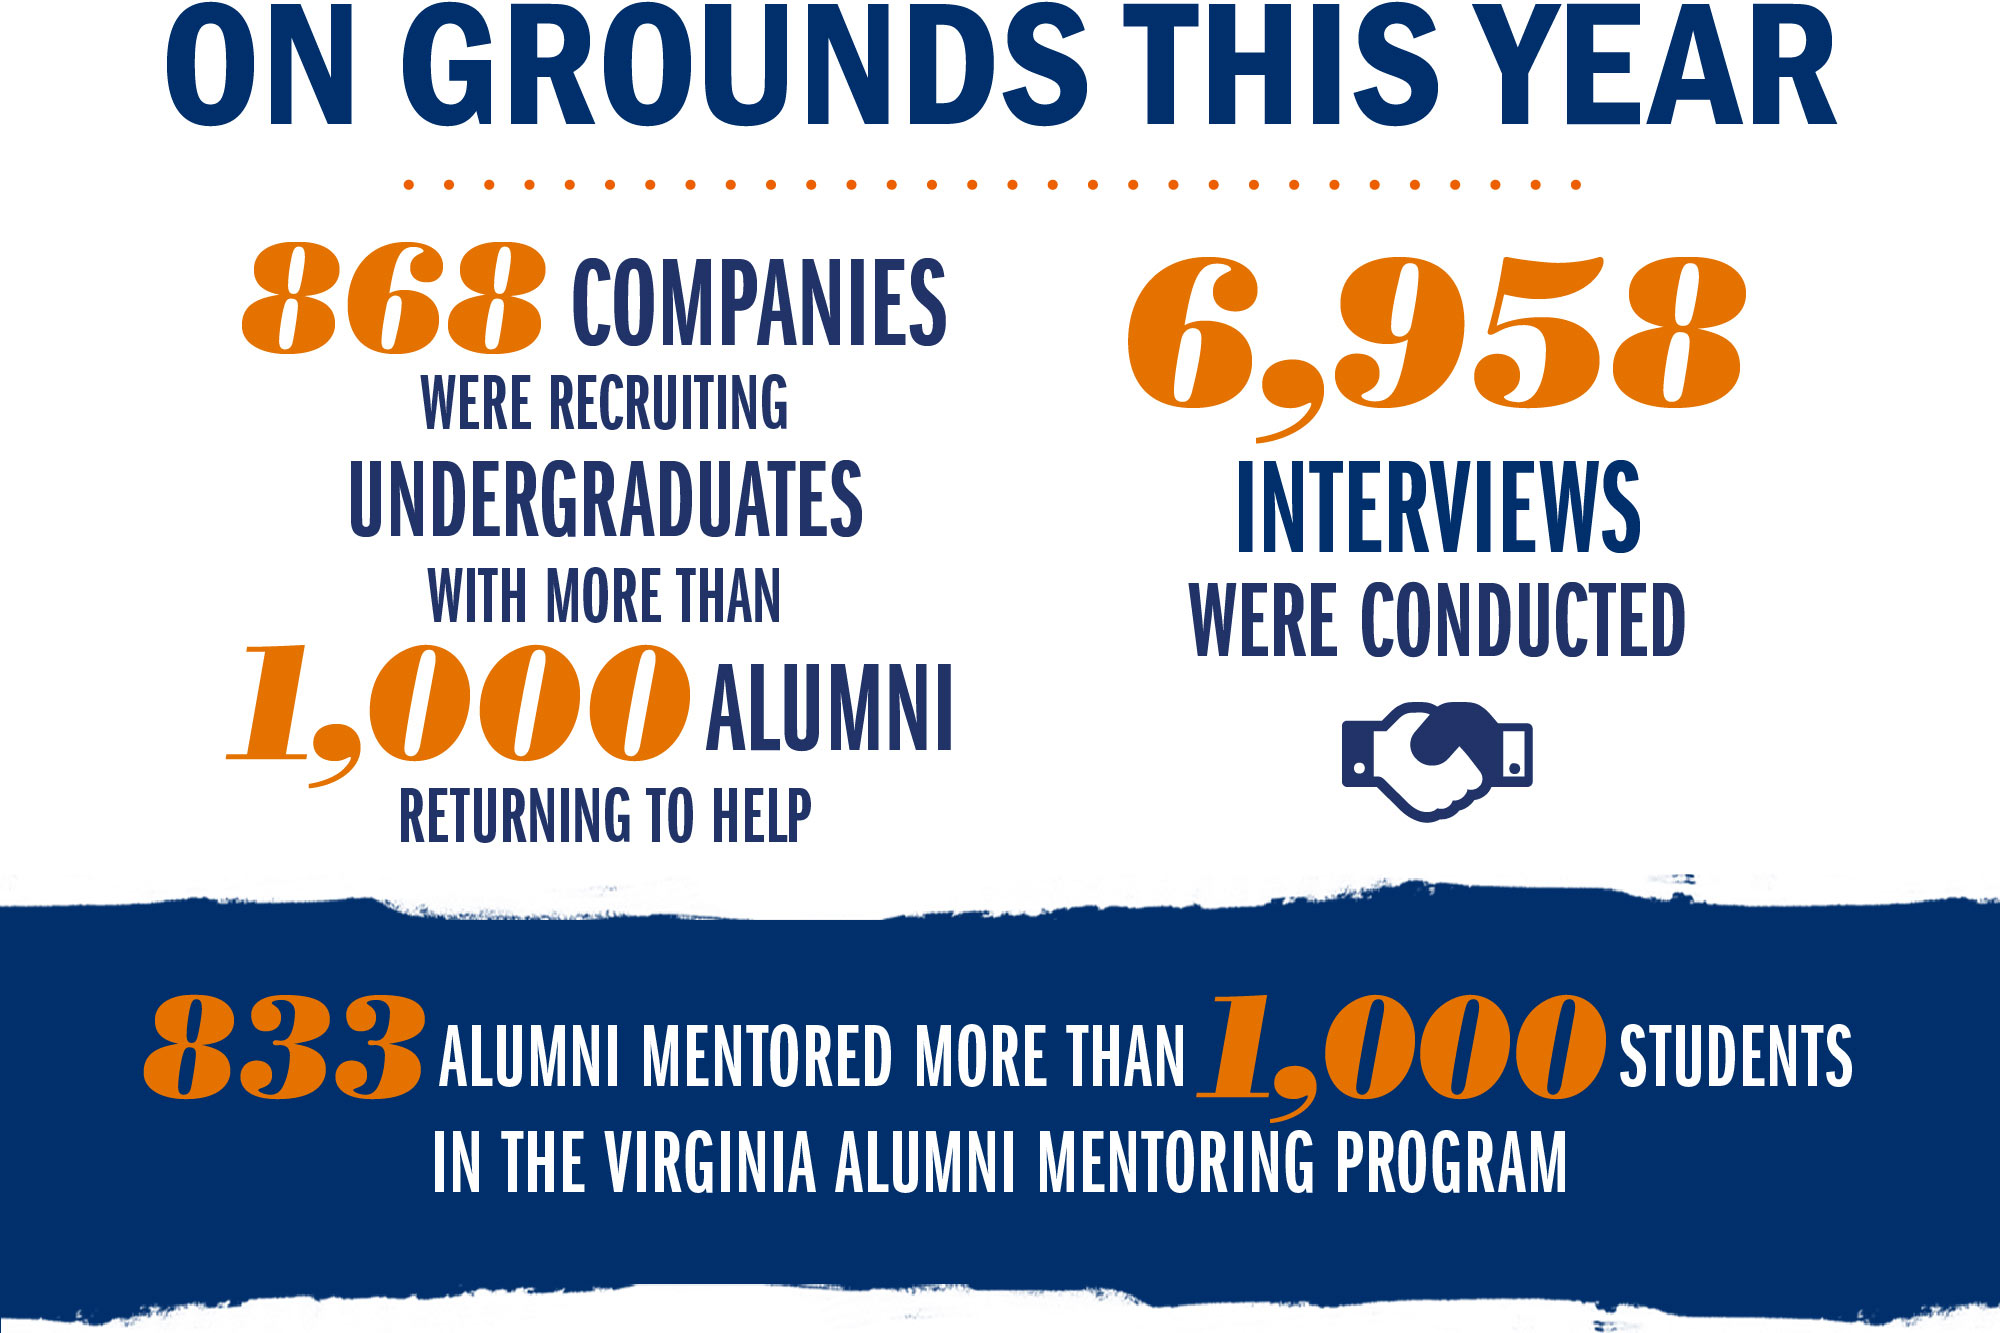 The statistics above were provided by the UVA Career Center and reflect undergraduate job recruitment and on-Grounds interviewing.